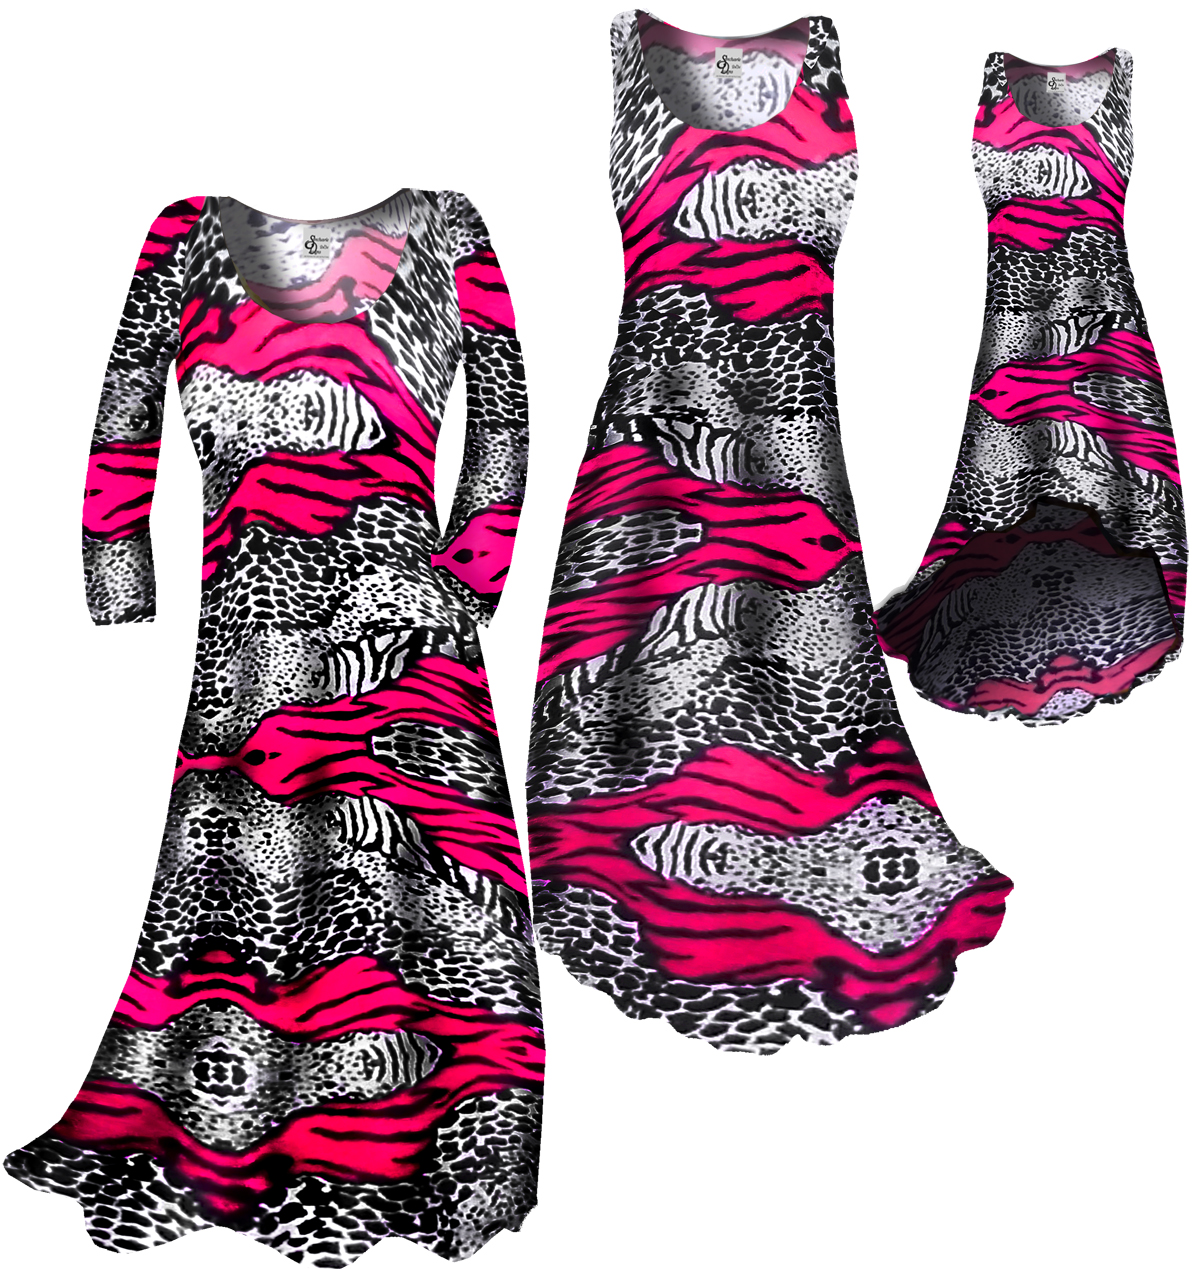 86bf61a6cab55 SOLD OUT! Sale!!! HOT Pink   Black Animal Print Slinky Plus Size    Supersize 4X